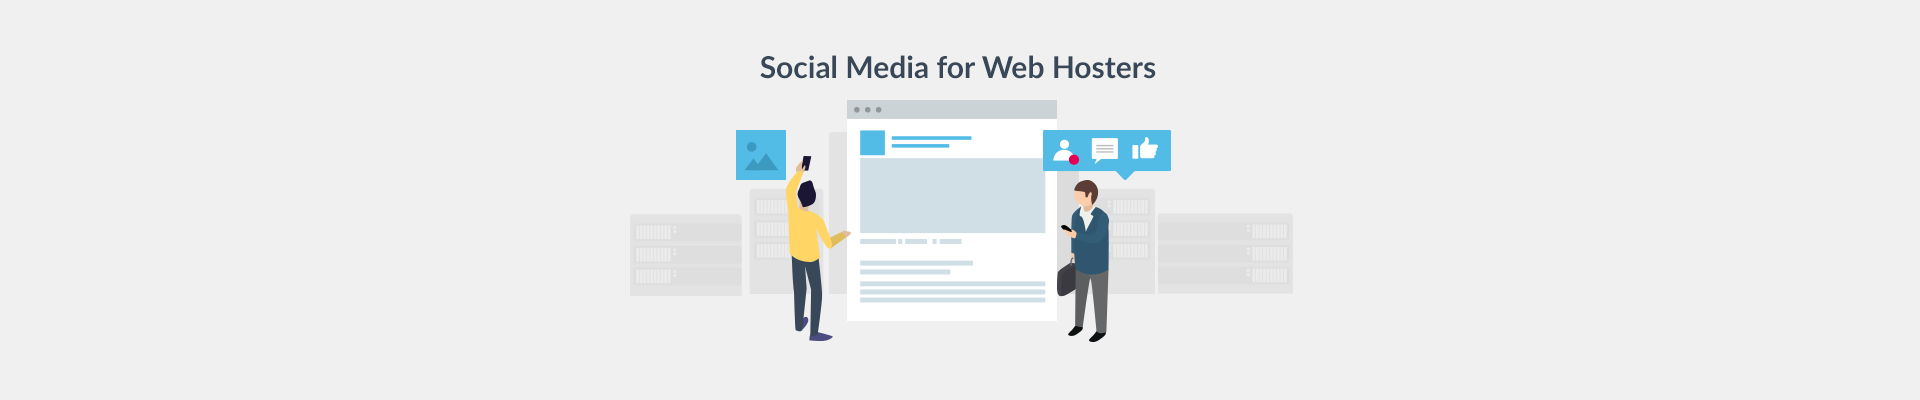 Social Media Tips For Web Hosting Industry